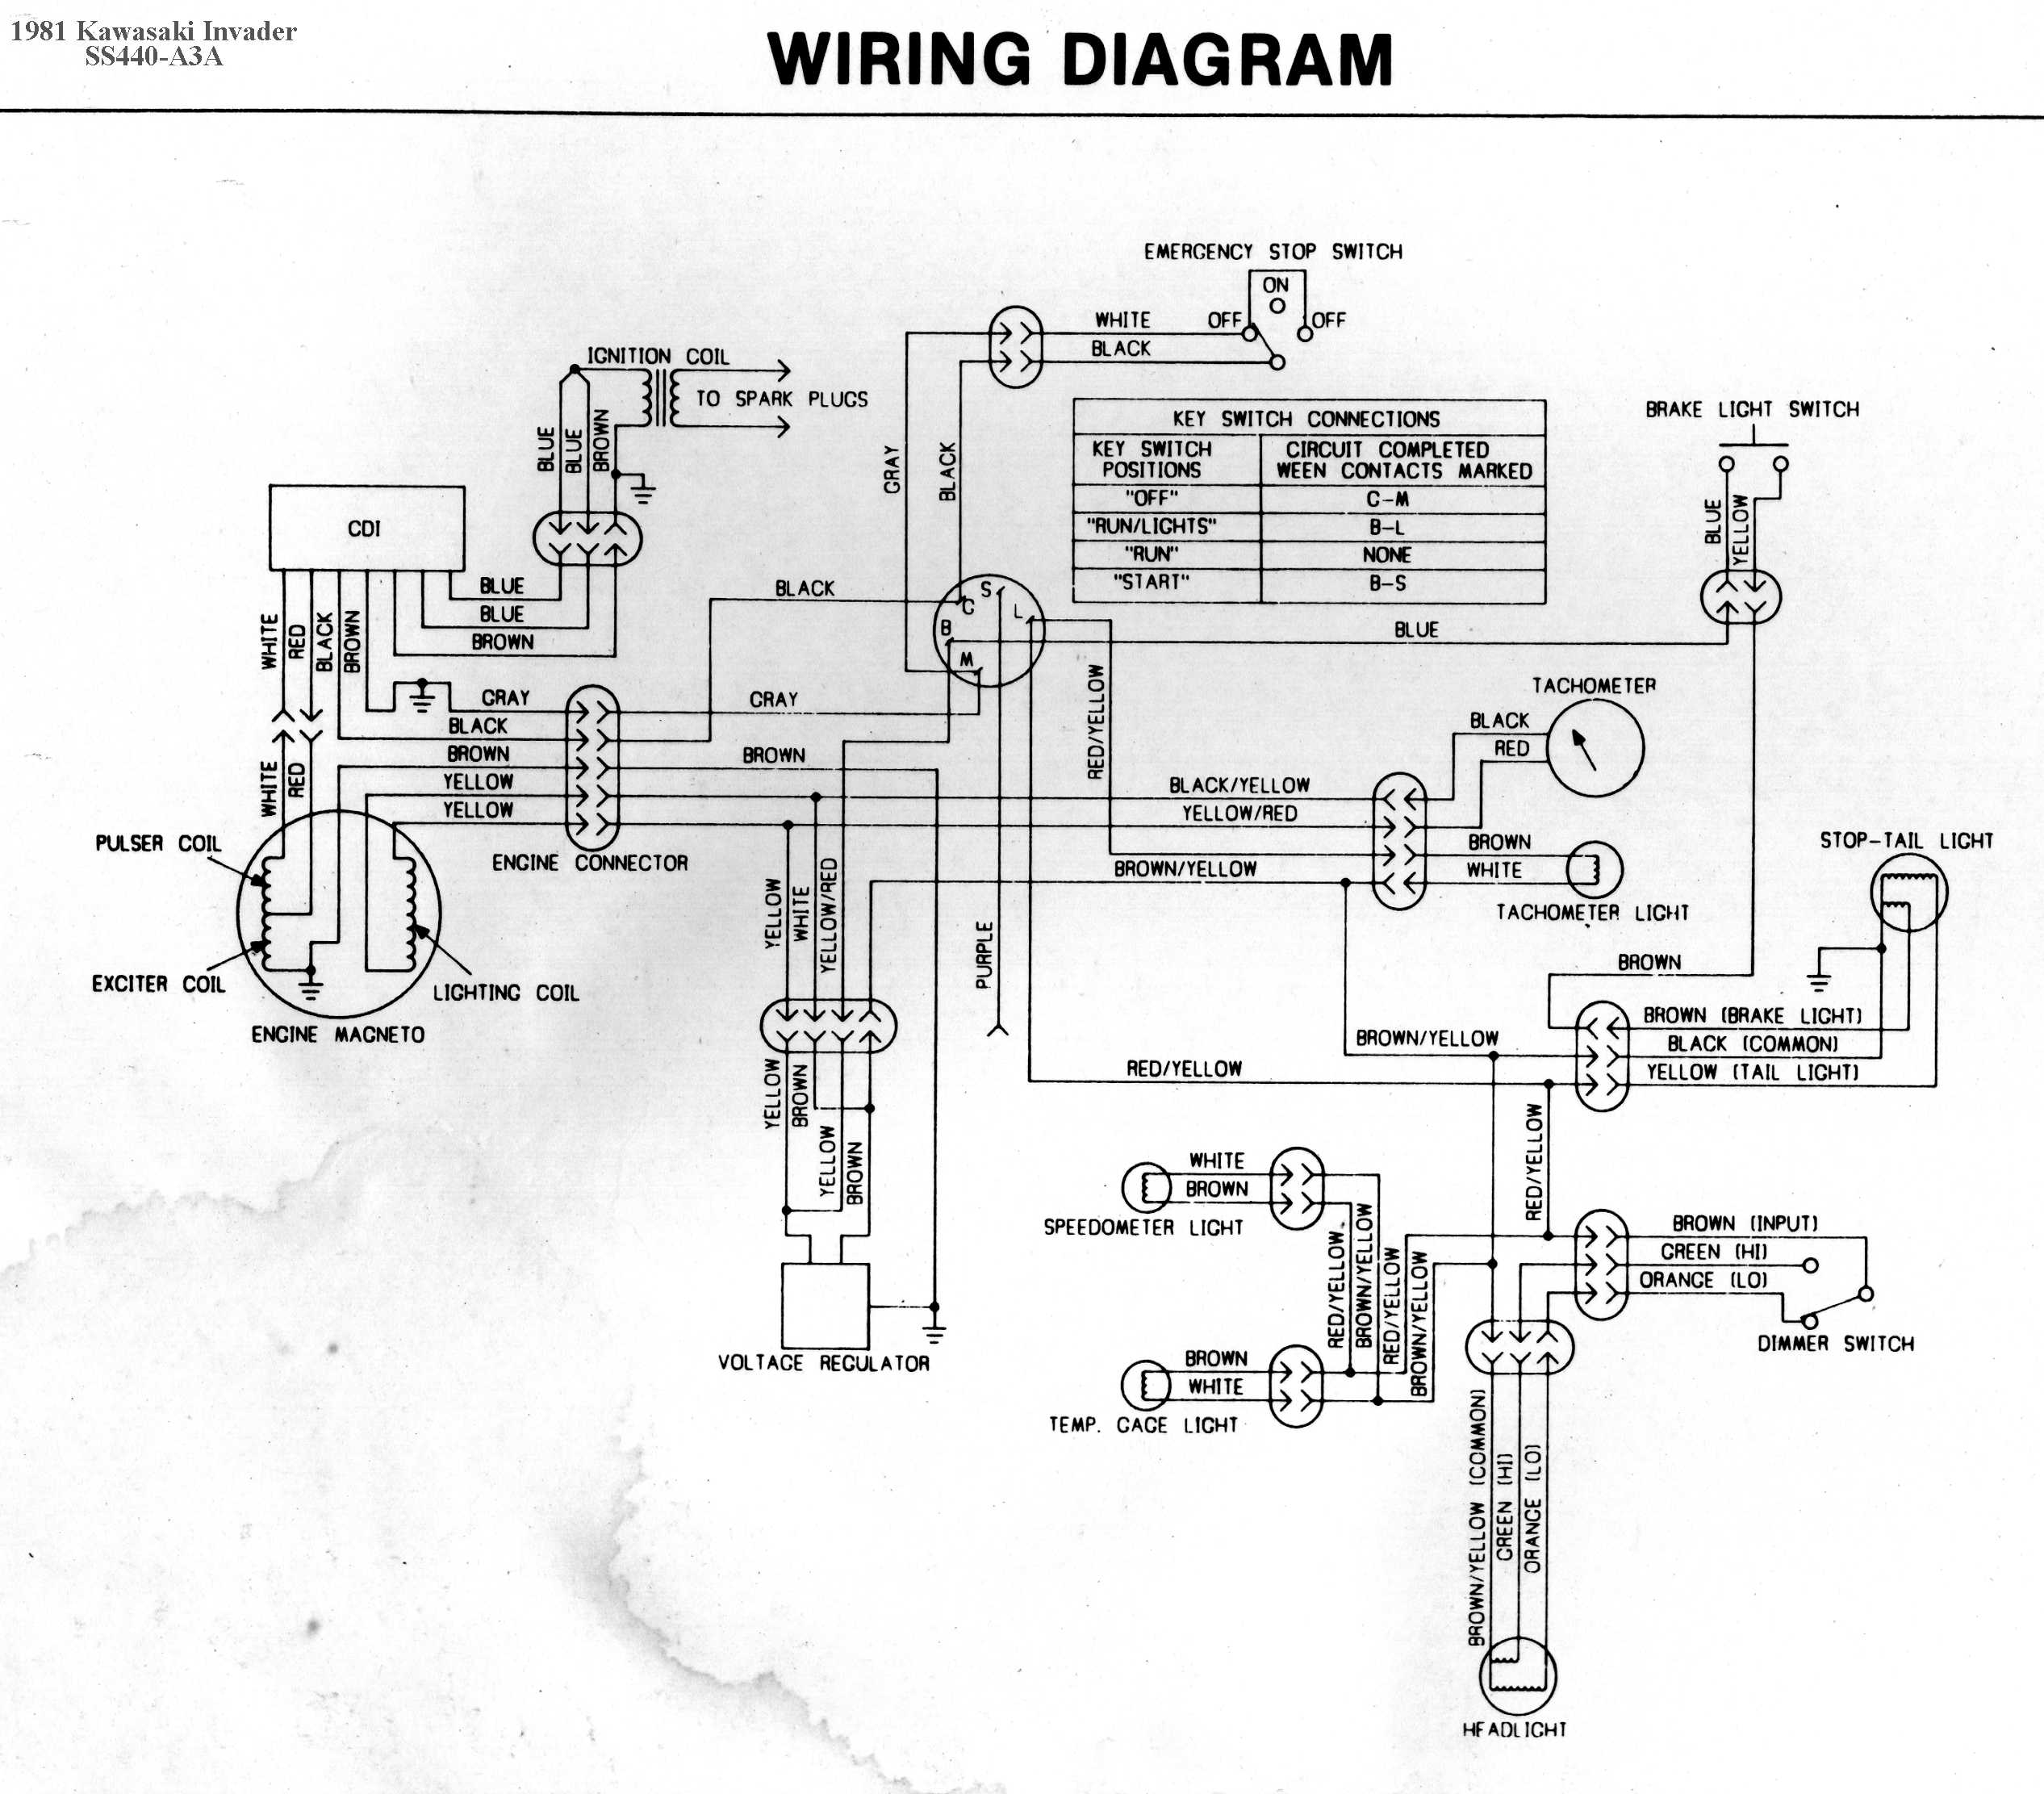 ss440a3a kawasaki invader snowmobile wiring diagrams invader wiring diagram at readyjetset.co